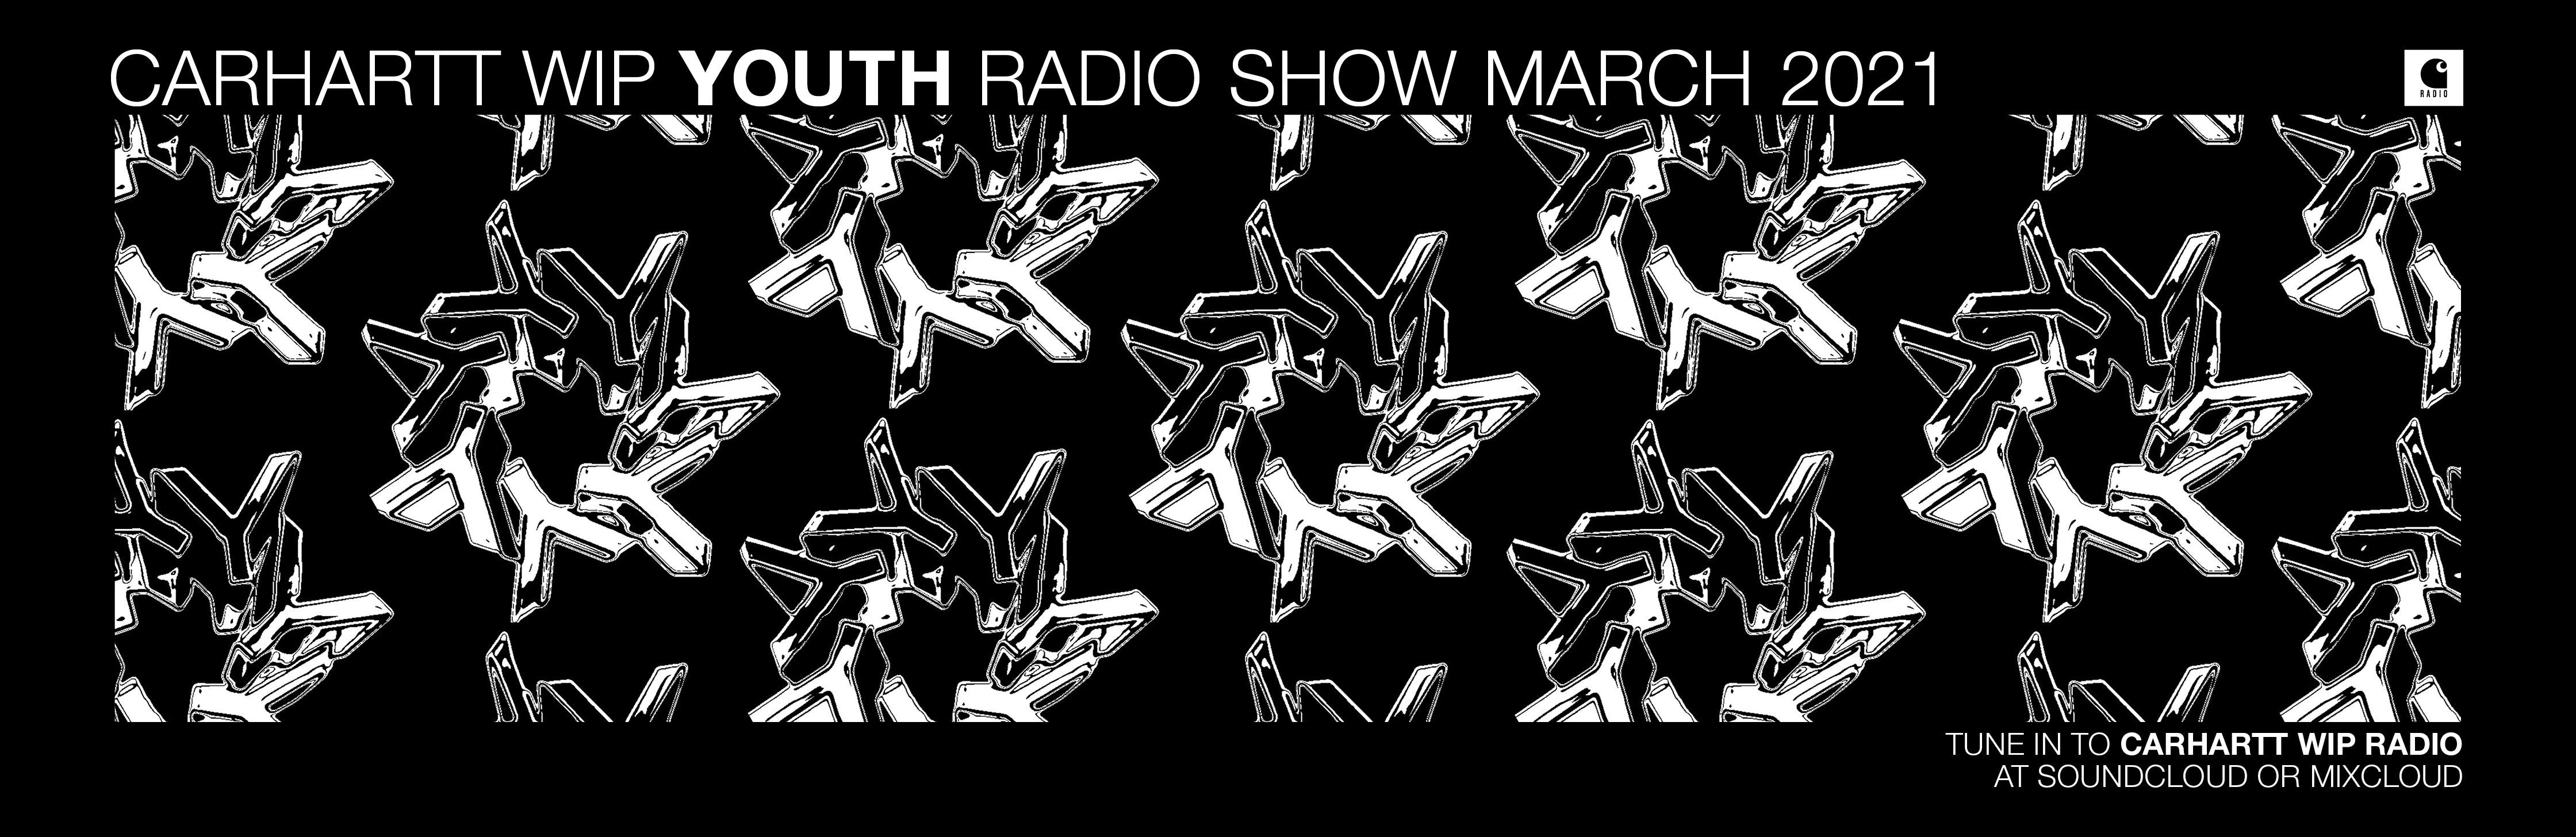 Carhartt WIP Radio Label Feature: YOUTH